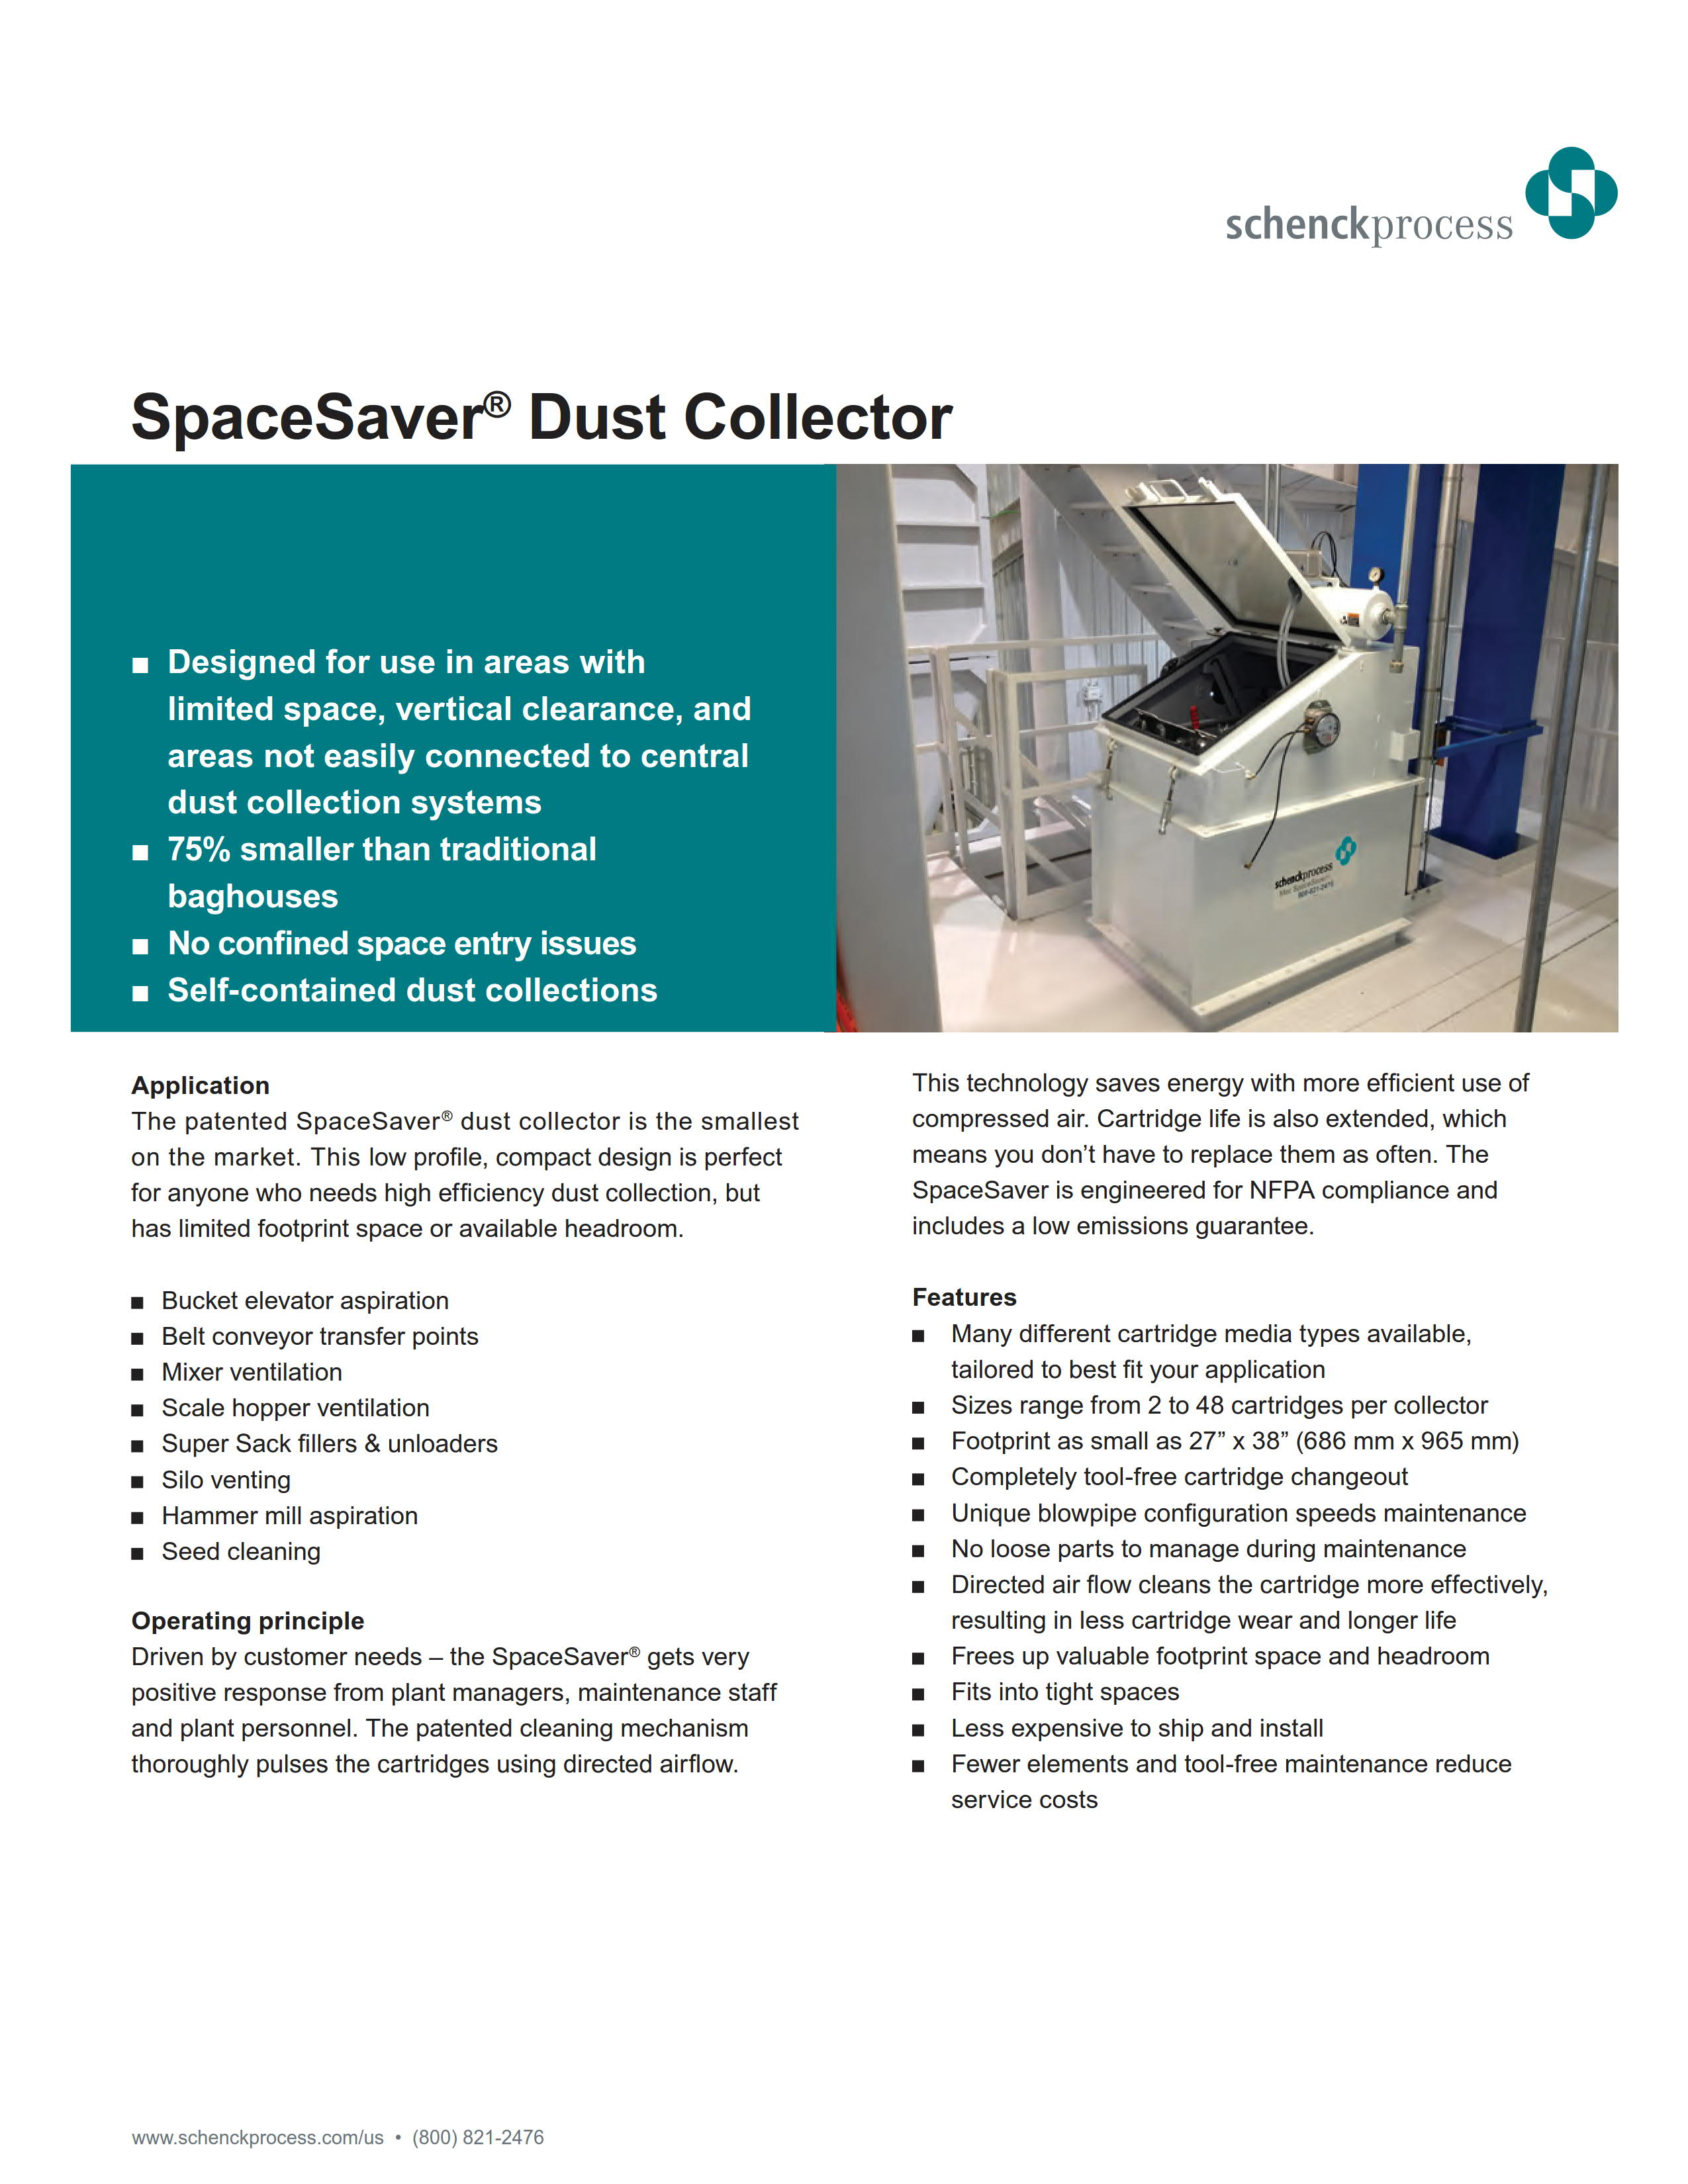 SpaceSaver Dust Collector